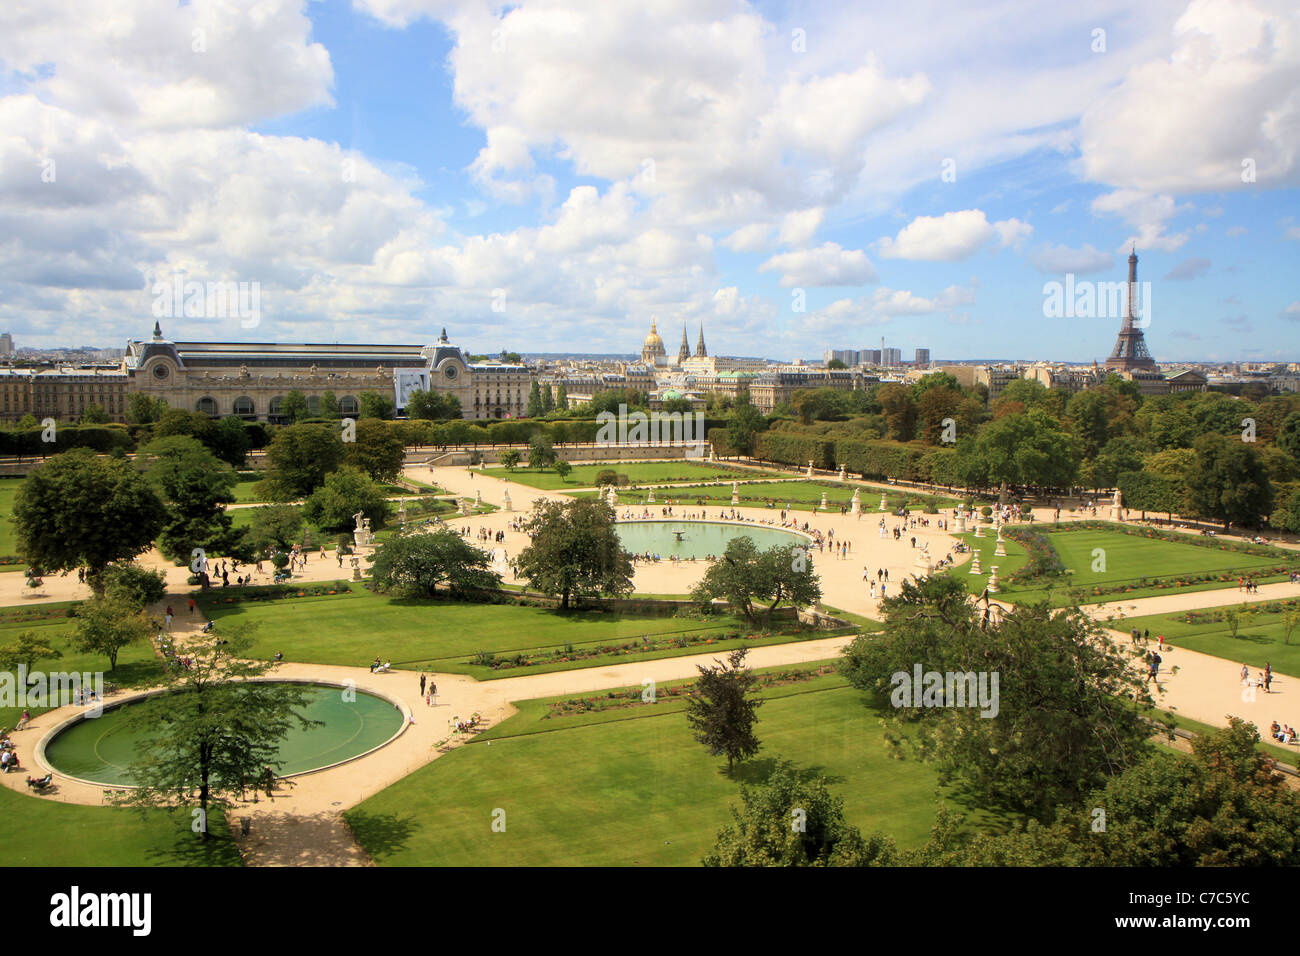 Aerial View Of Jardin Des Tuileries From The Great Wheel